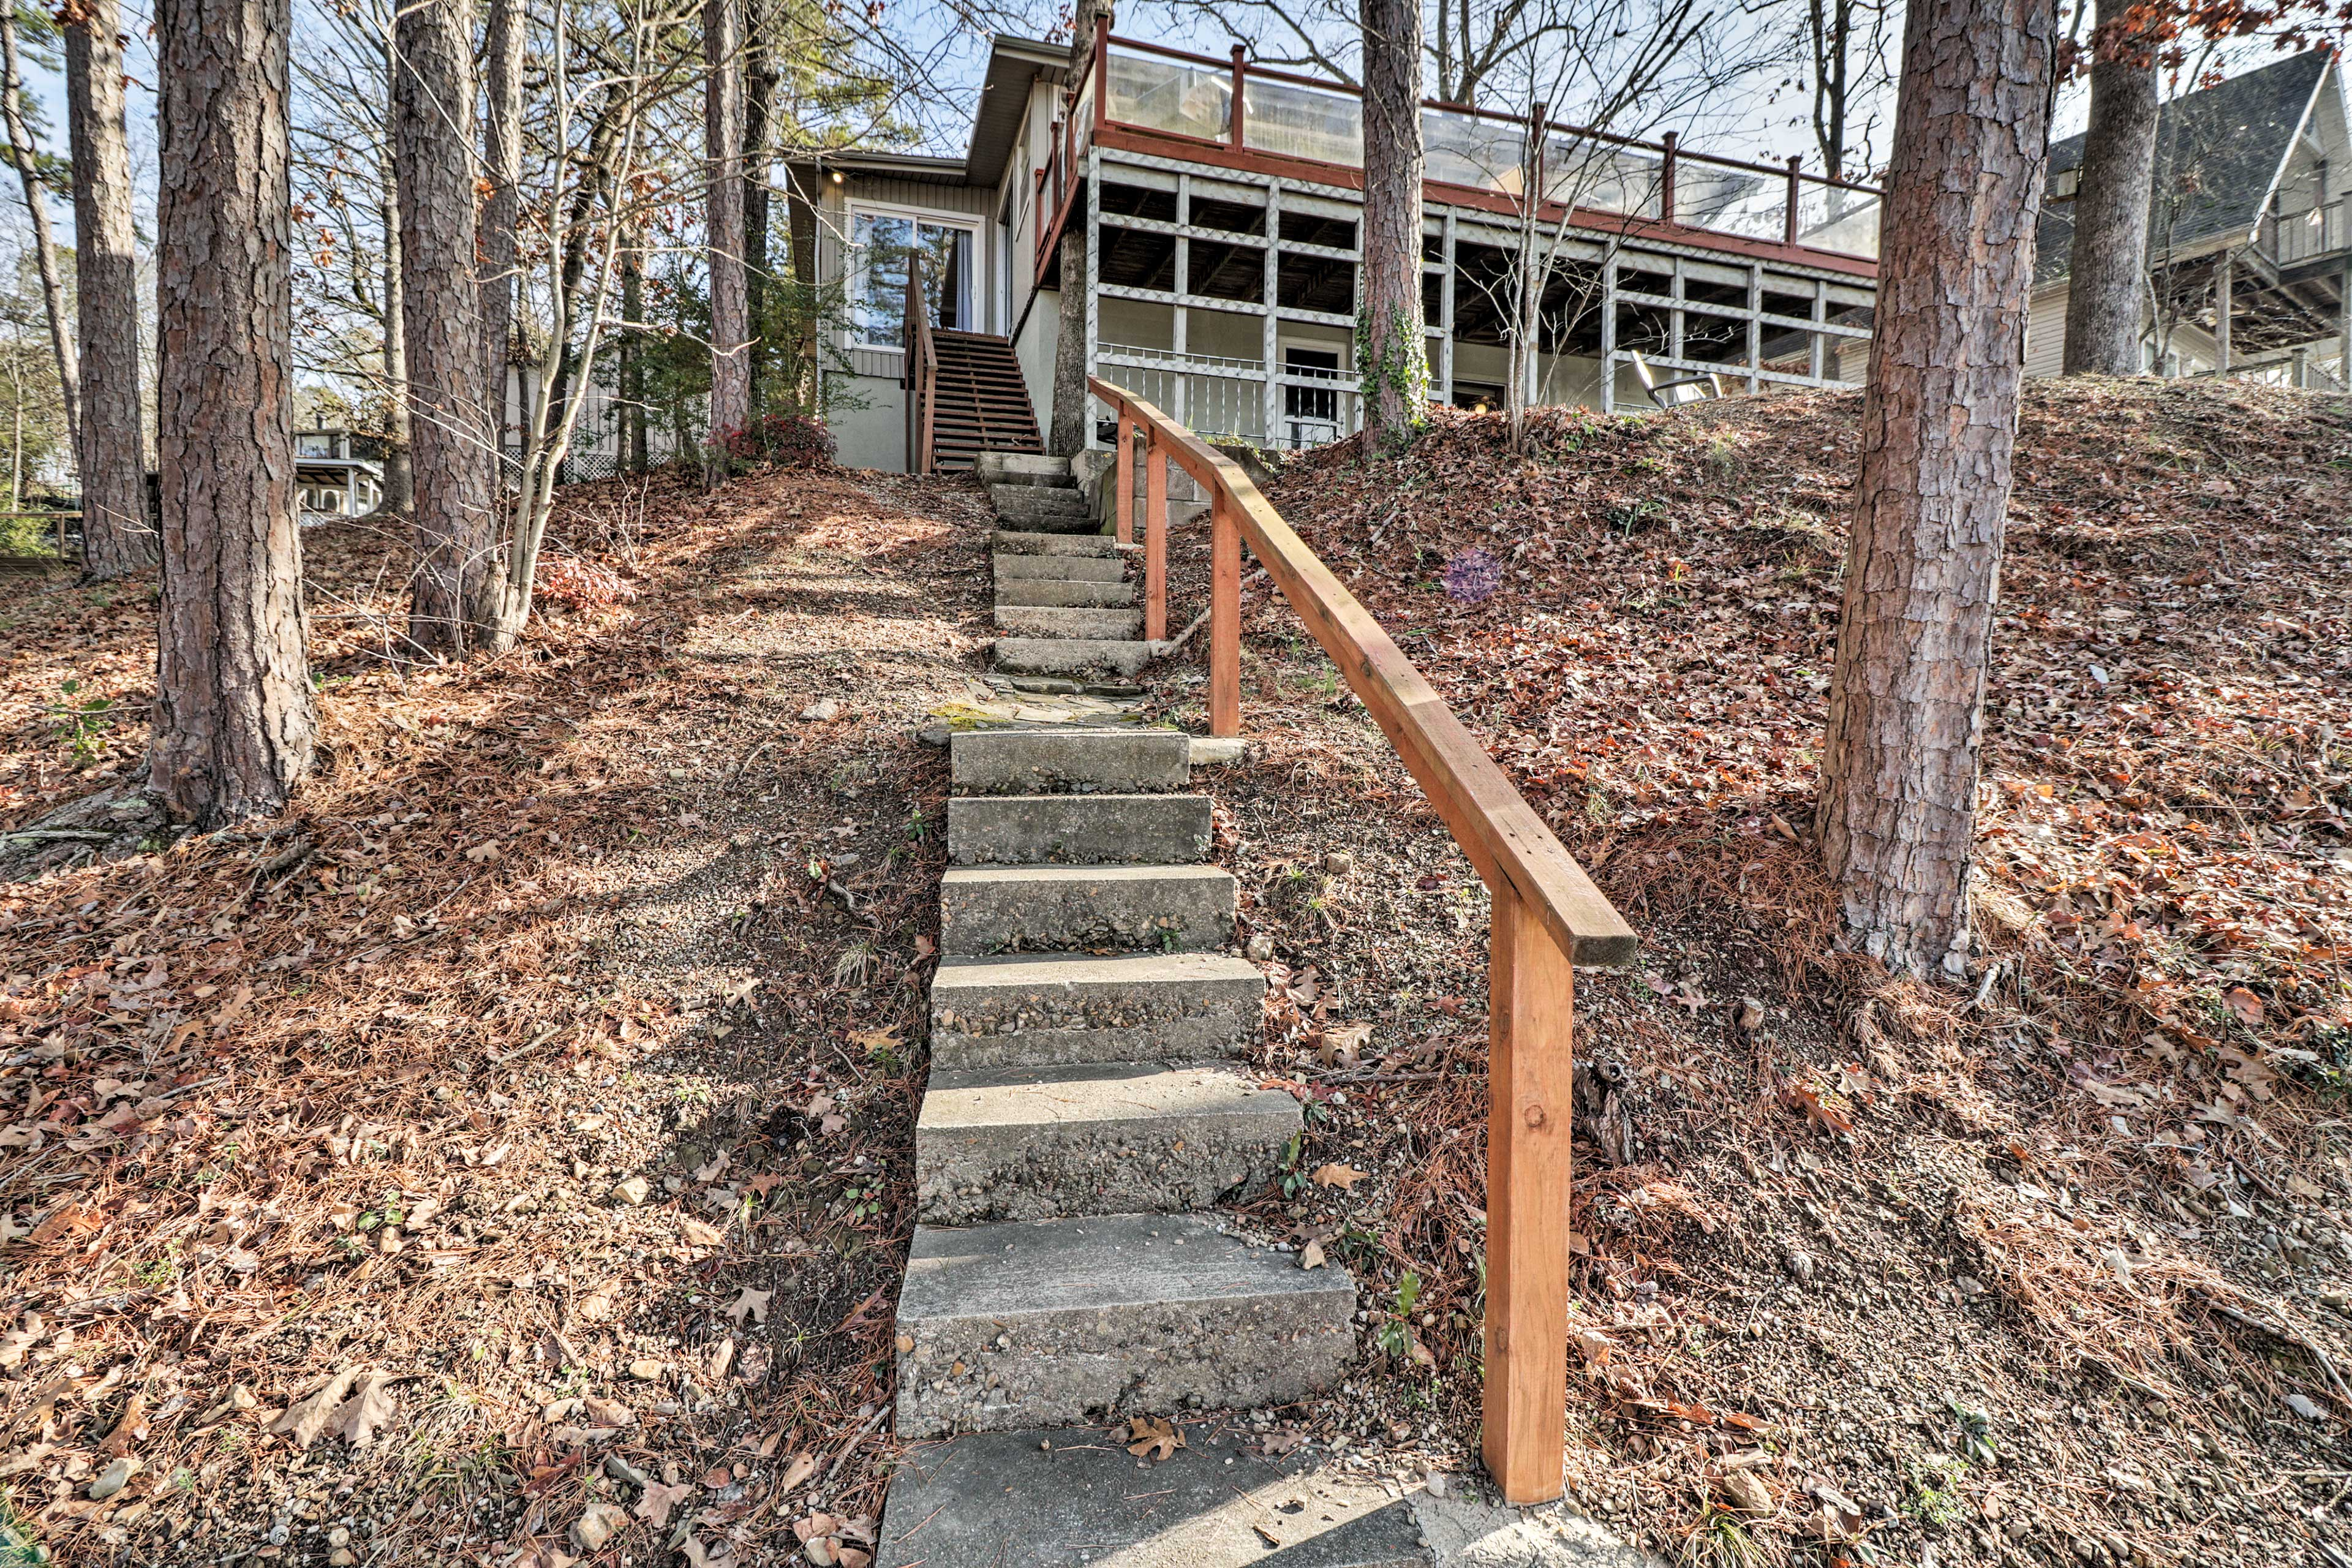 This single-story home has stairs leading down to the riverfront.